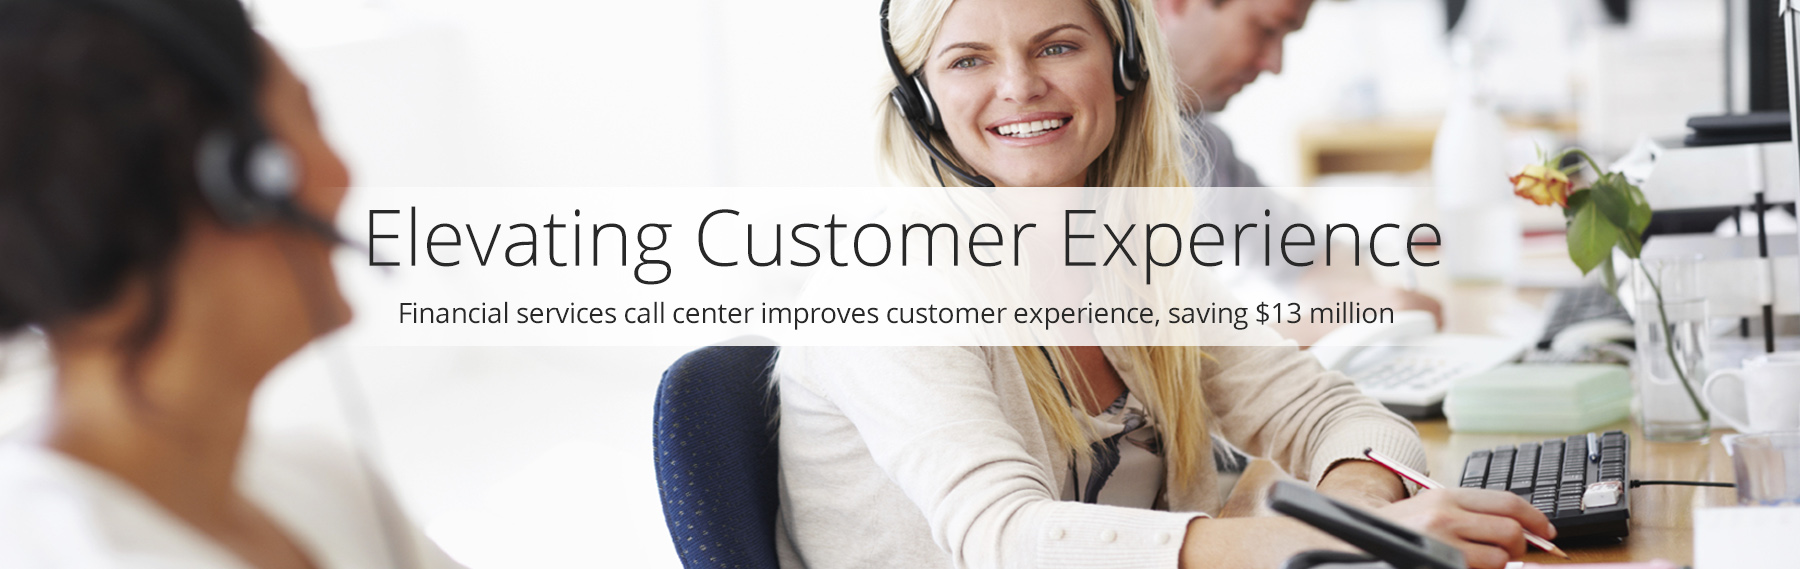 Elevating Customer Experience